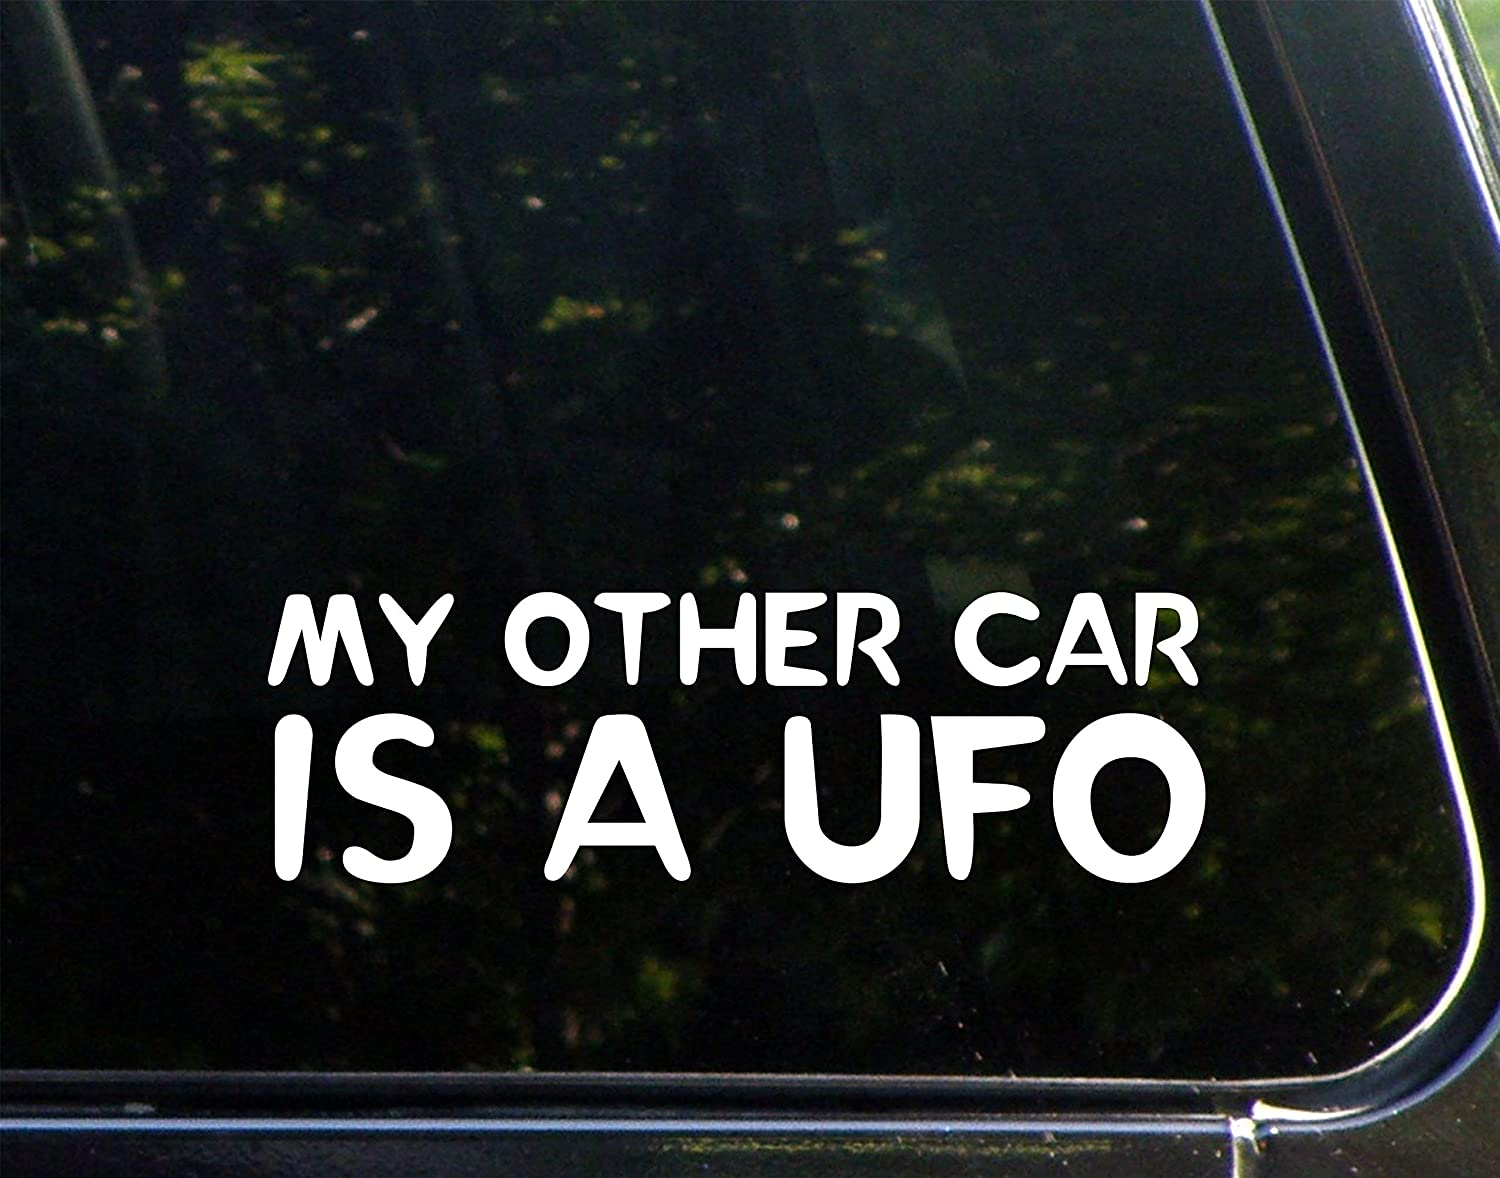 """Diamond Graphics My Other Car is A UFO (8-3/4"""" x 2-3/4"""") Die Cut Decal Bumper Sticker for Windows, Cars, Trucks, Laptops, Etc."""